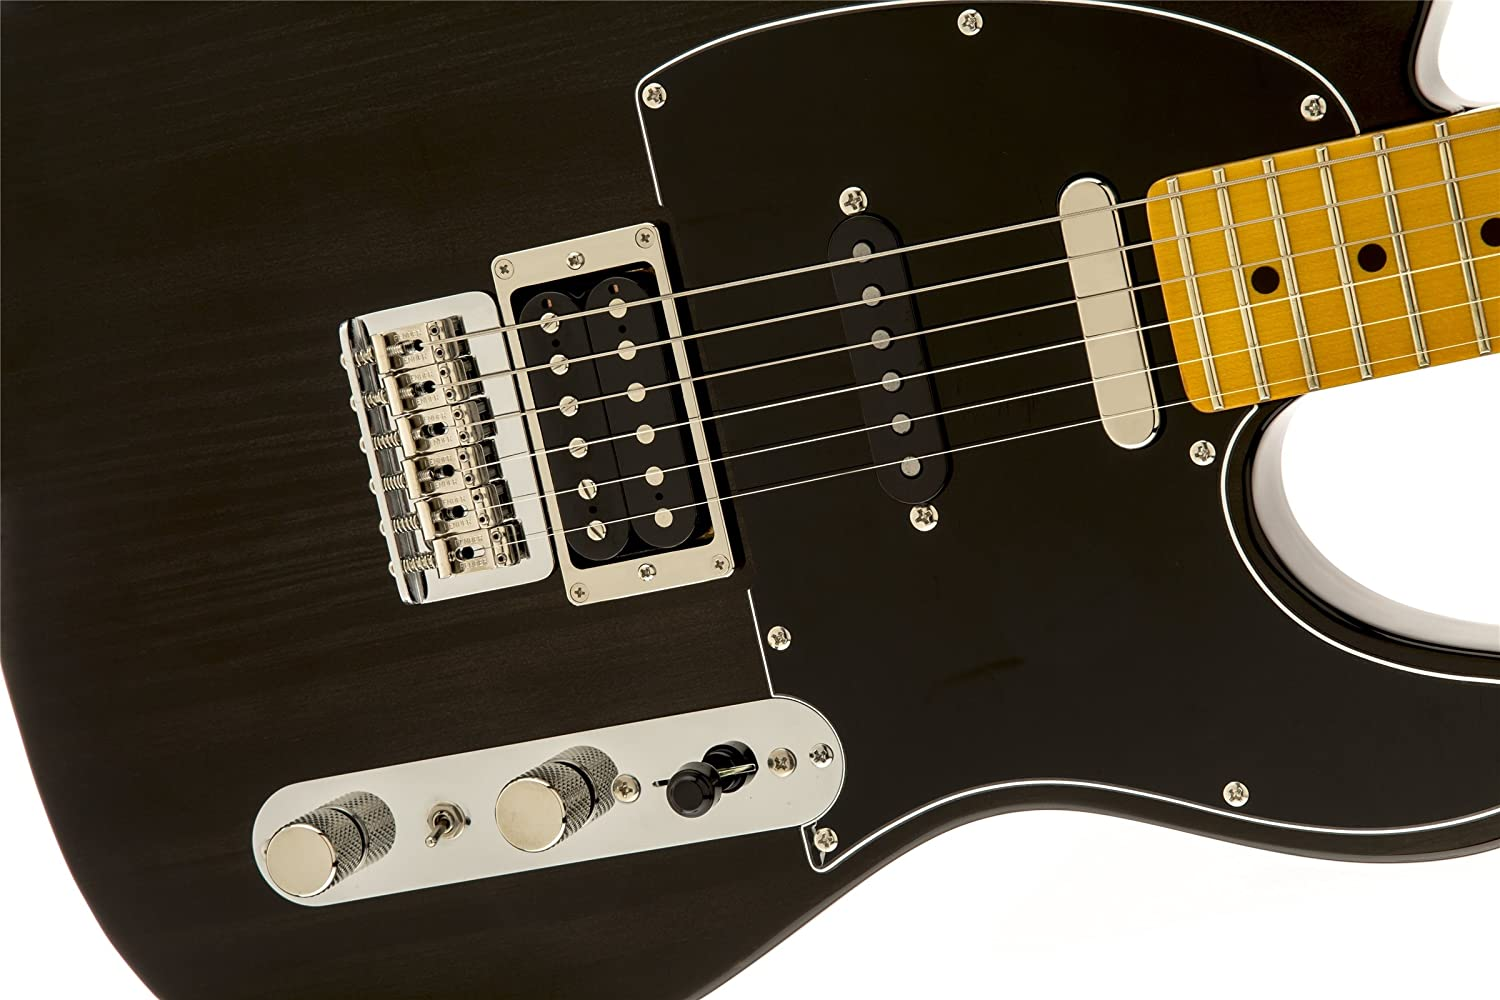 Amazon.com: Fender Modern Player Tele Plus Electric Guitar, Charcoal Transparent, Maple Fretboard: Musical Instruments